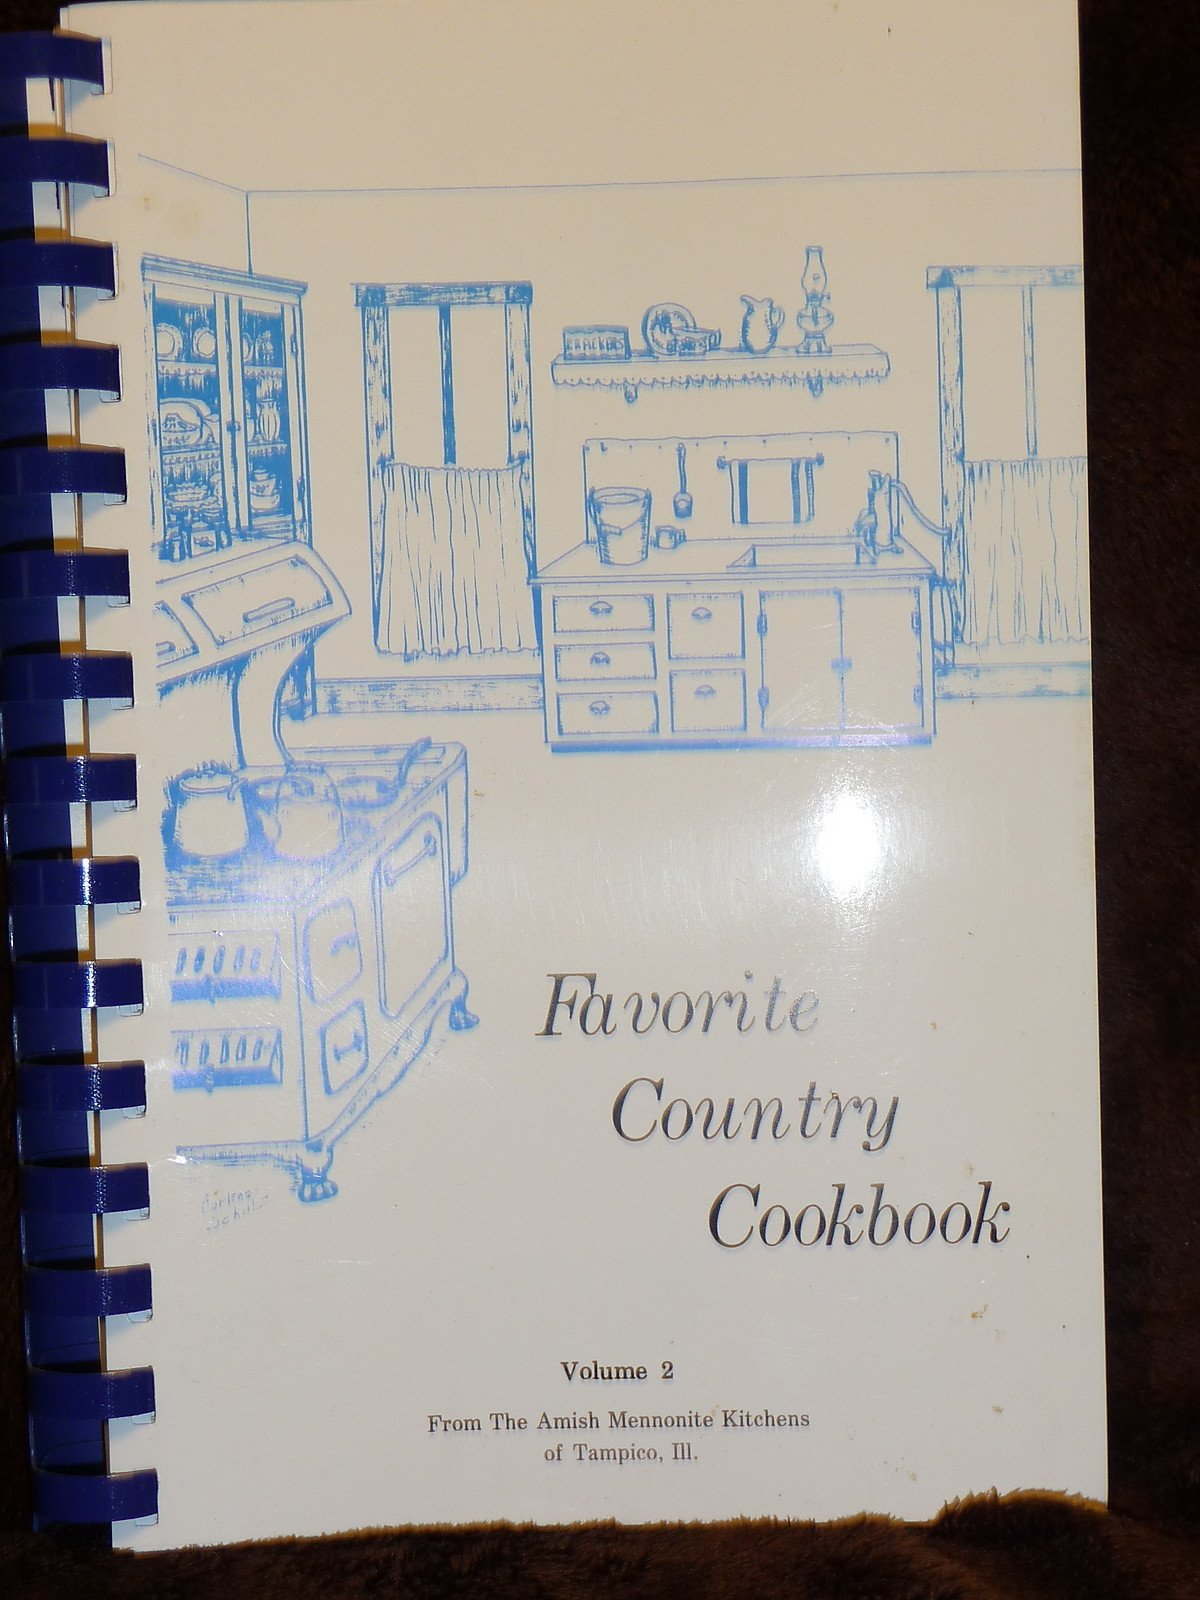 002: Favorite Country Cookbook: From the Amish Mennonite Kitchens of Tampico, Illinois